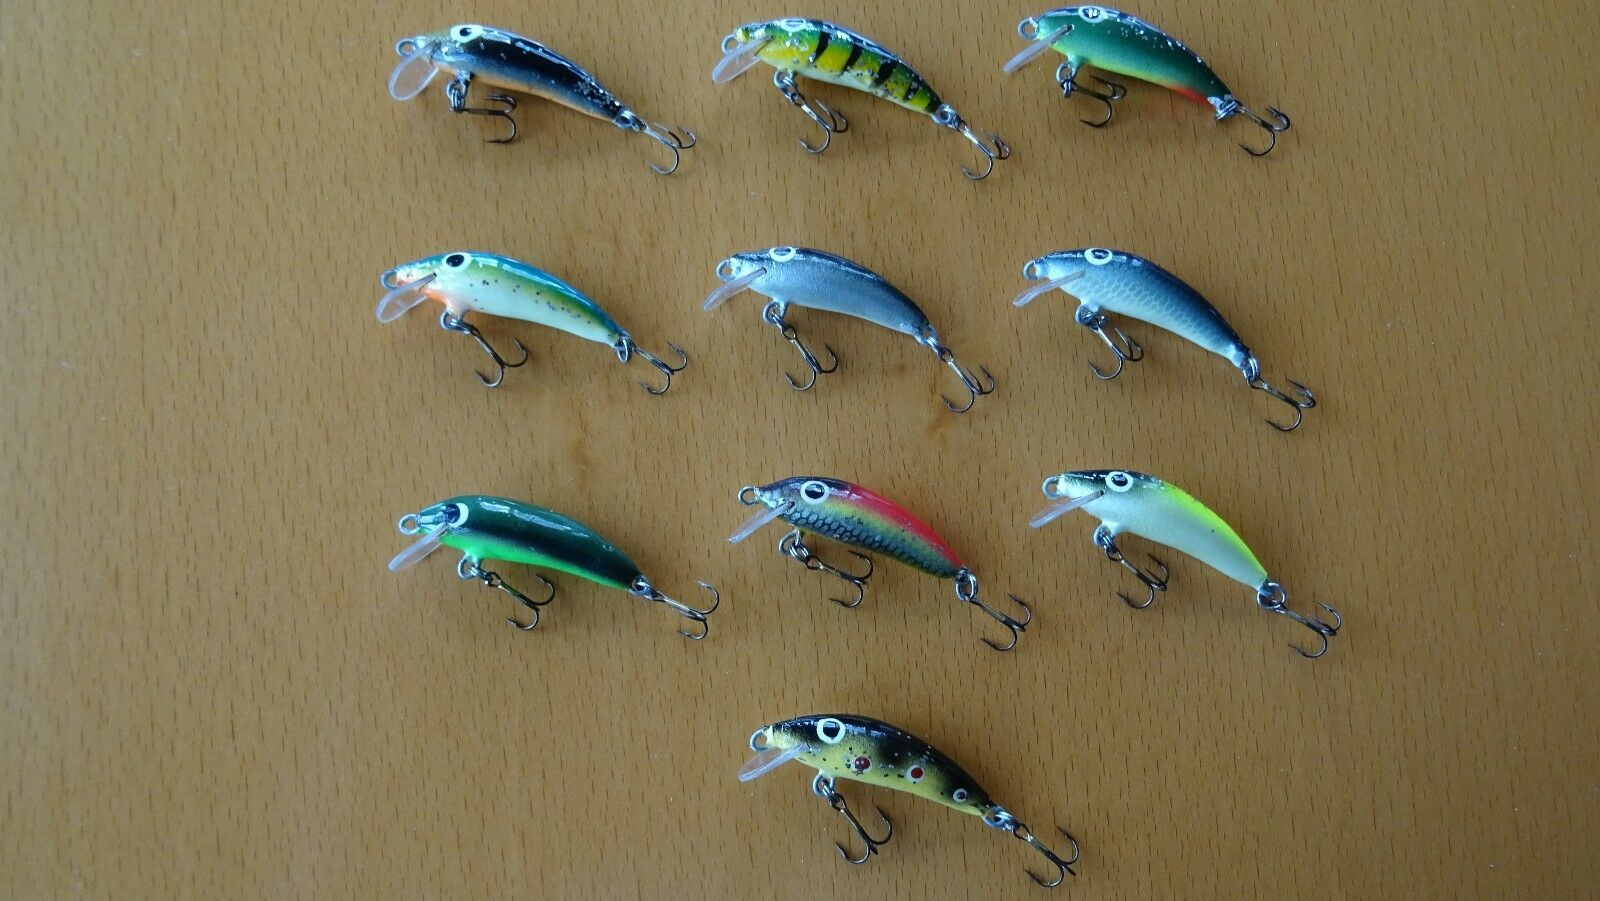 10 x LURE gold ASSAN WOBBLER TROUT 3,5cm 2,0g FLOATING HAND JOB made of wood